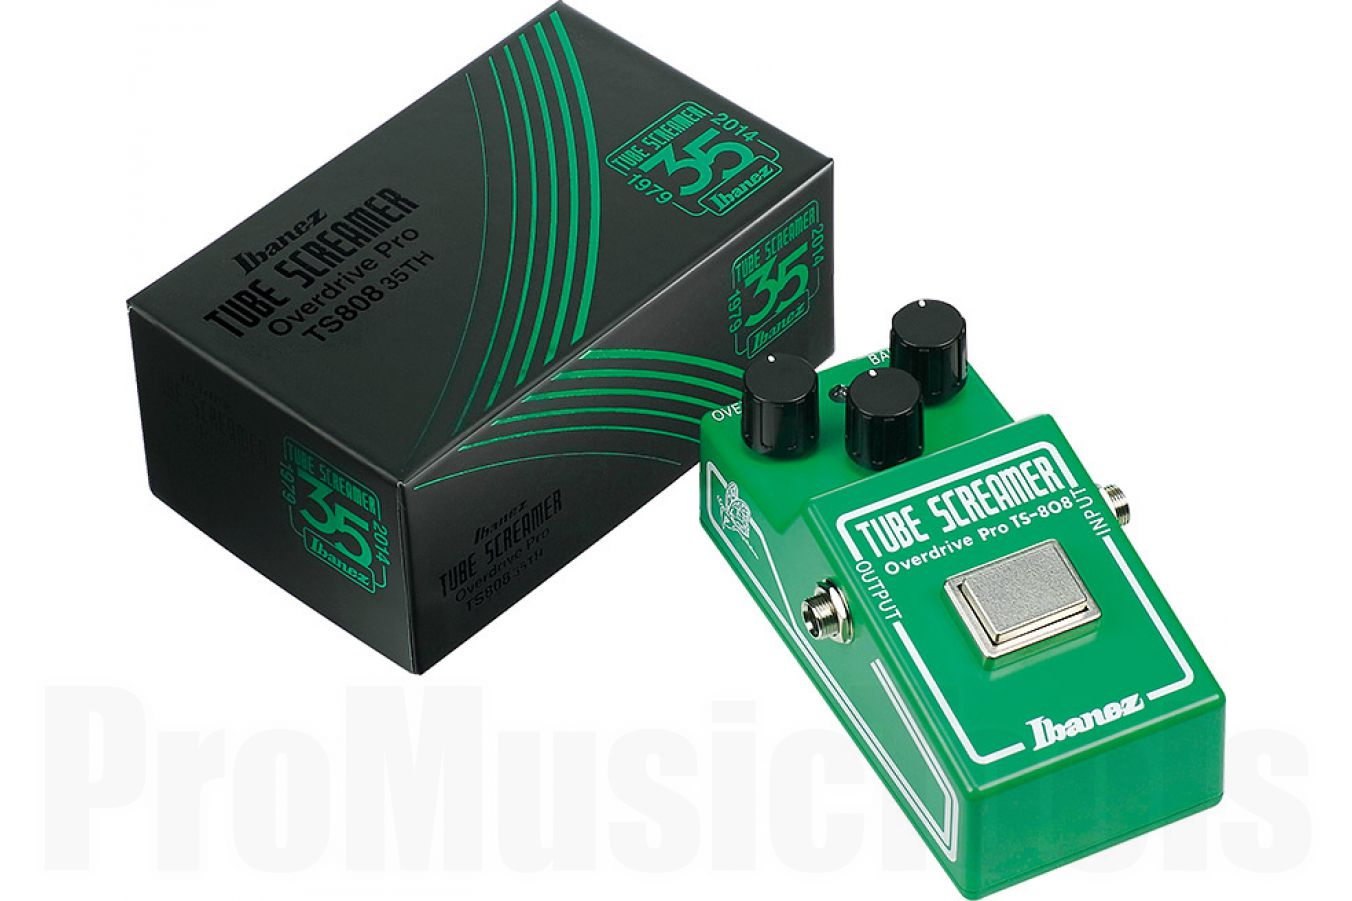 Ibanez TS80835TH 35th Anniversary Tube Screamer